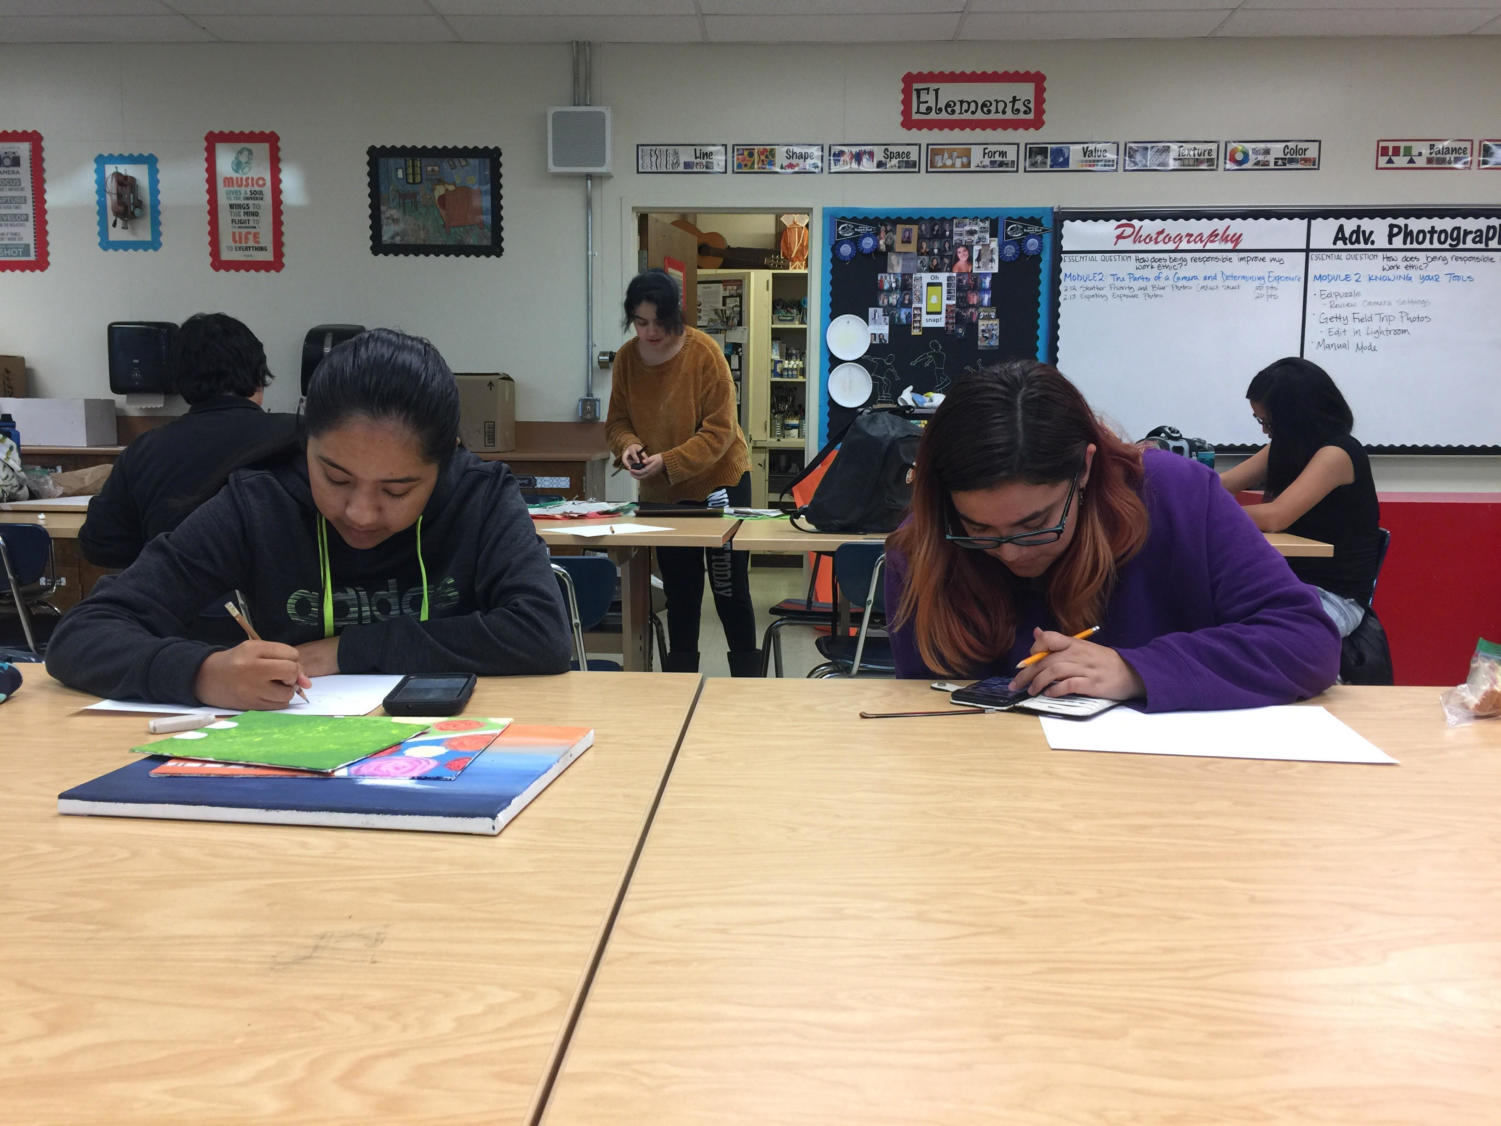 Christina Roa (left) and Lauren Ruiz (right) working on a paper mache project during the art club meeting on Dec. 12.